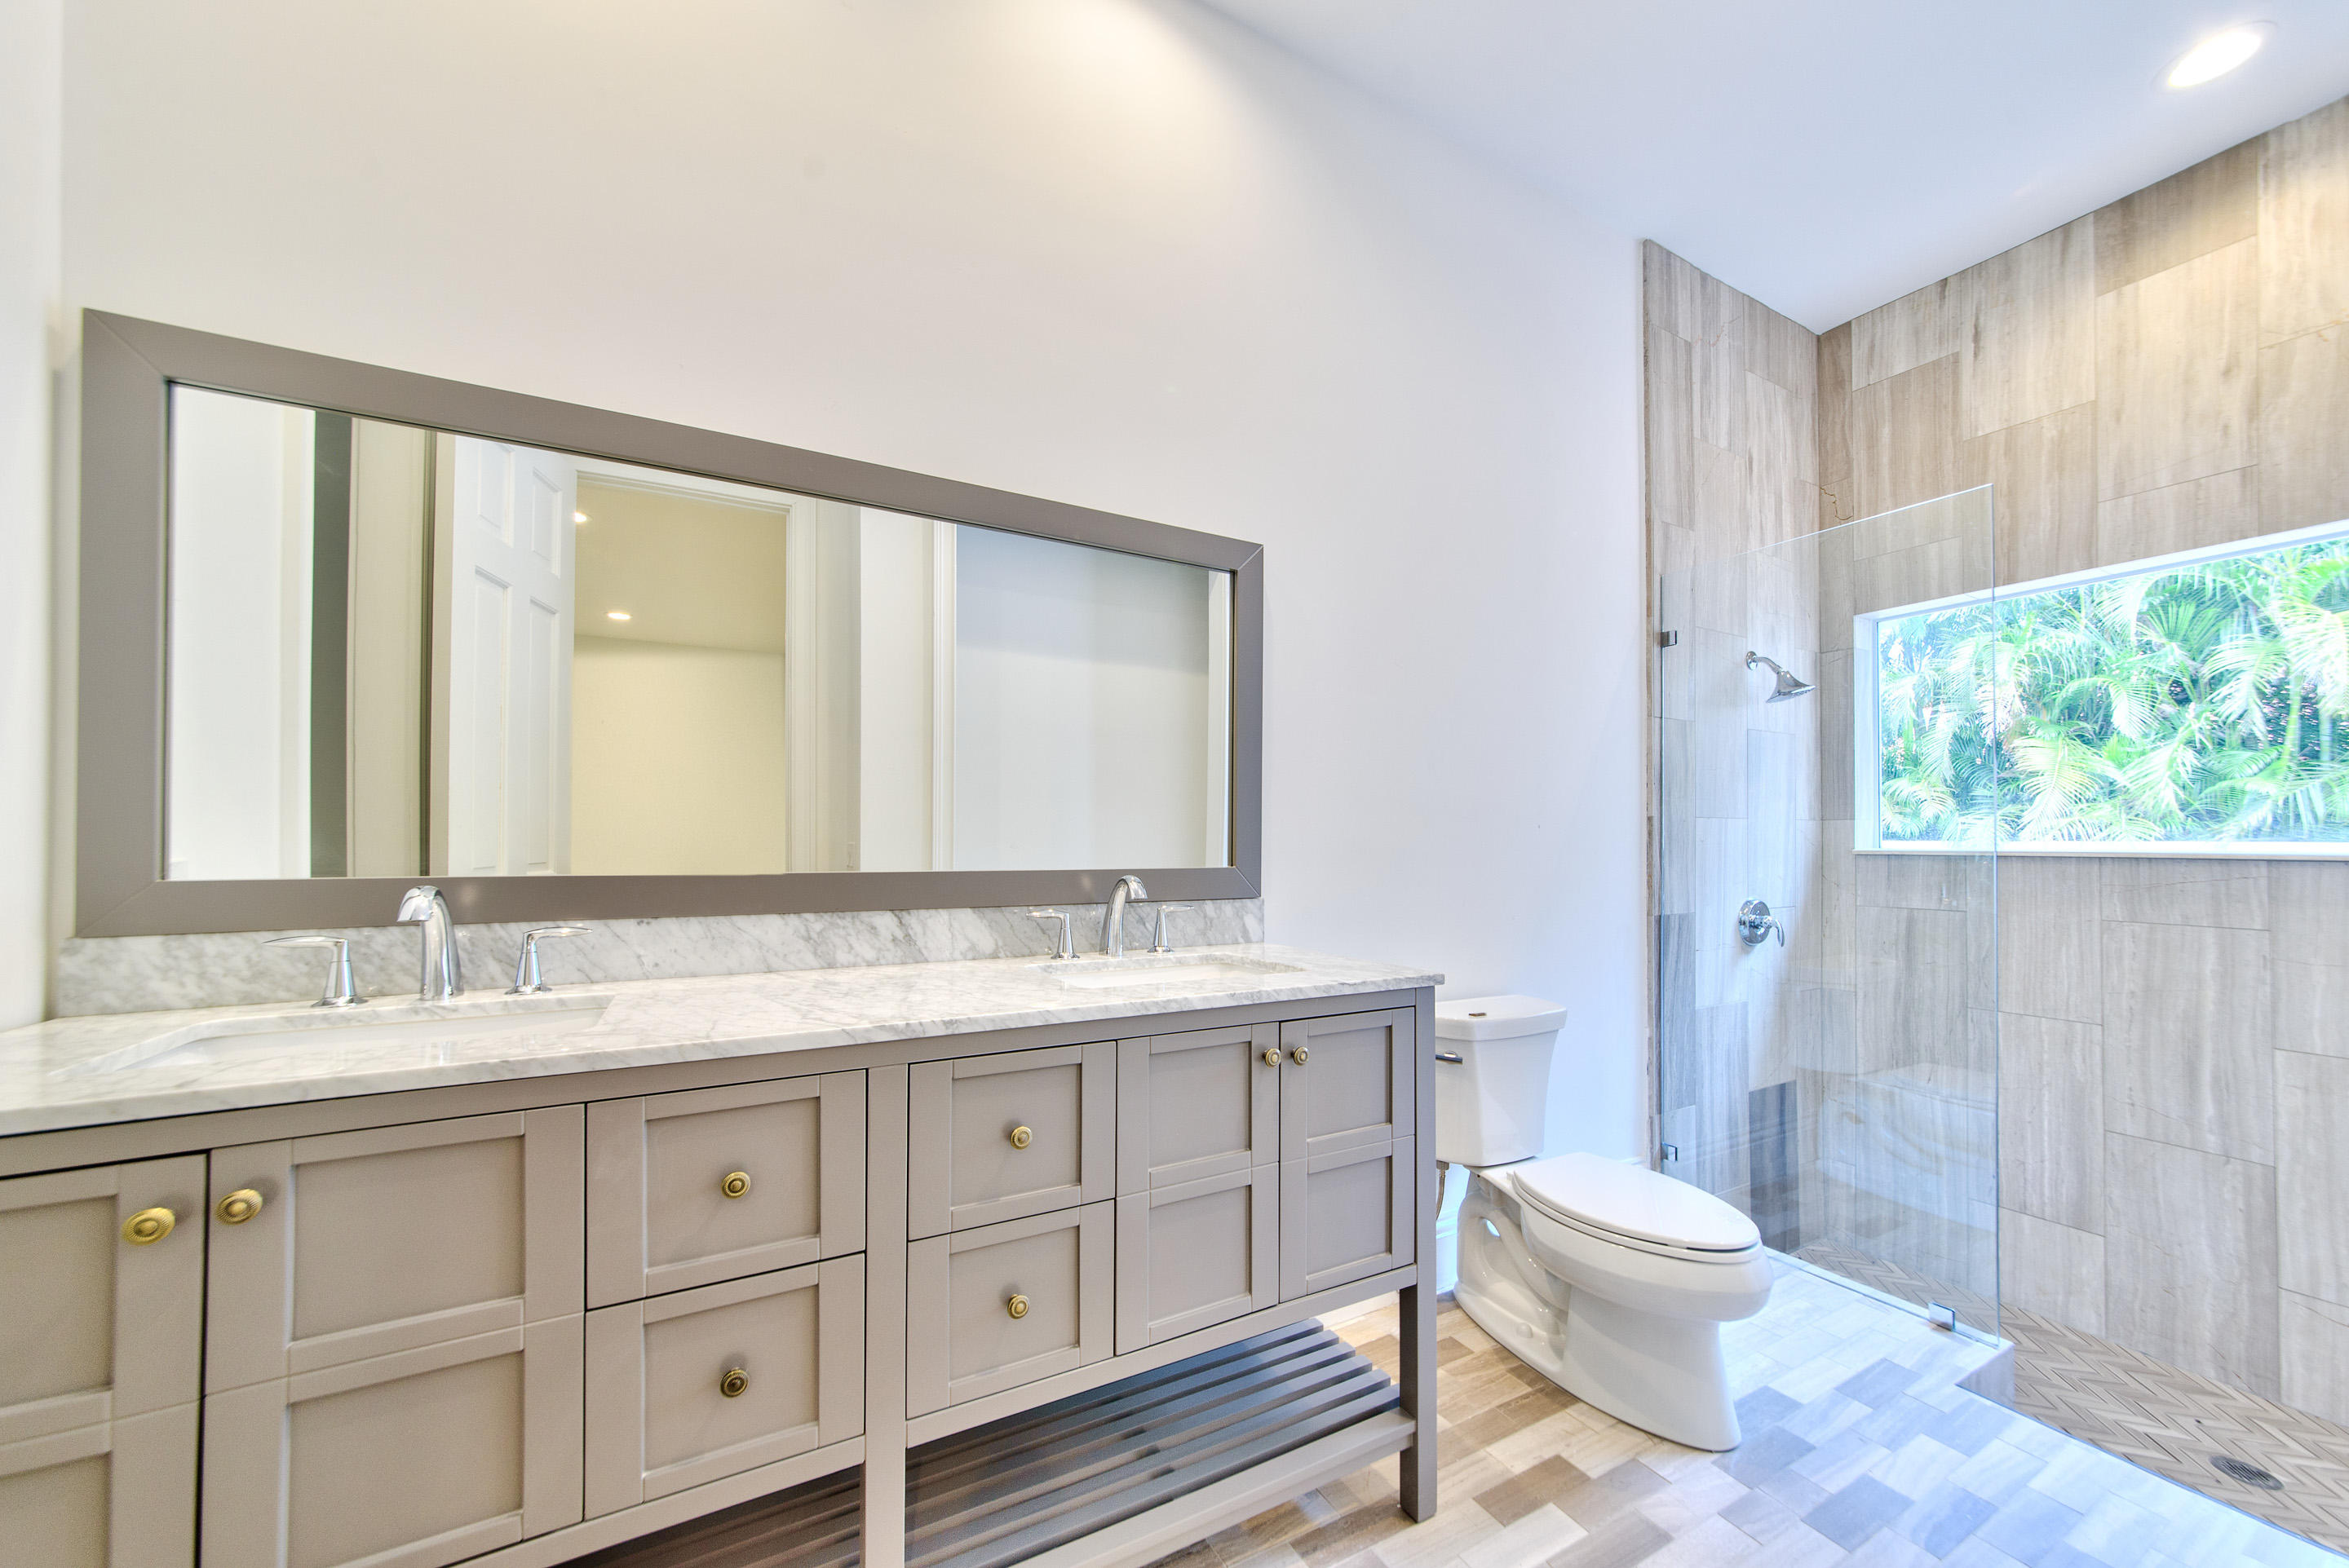 11927 Maidstone Drive, Wellington, Florida 33414, 6 Bedrooms Bedrooms, ,7.2 BathroomsBathrooms,Single Family,For Sale,Palm Beach Polo,Maidstone,1,RX-10371512